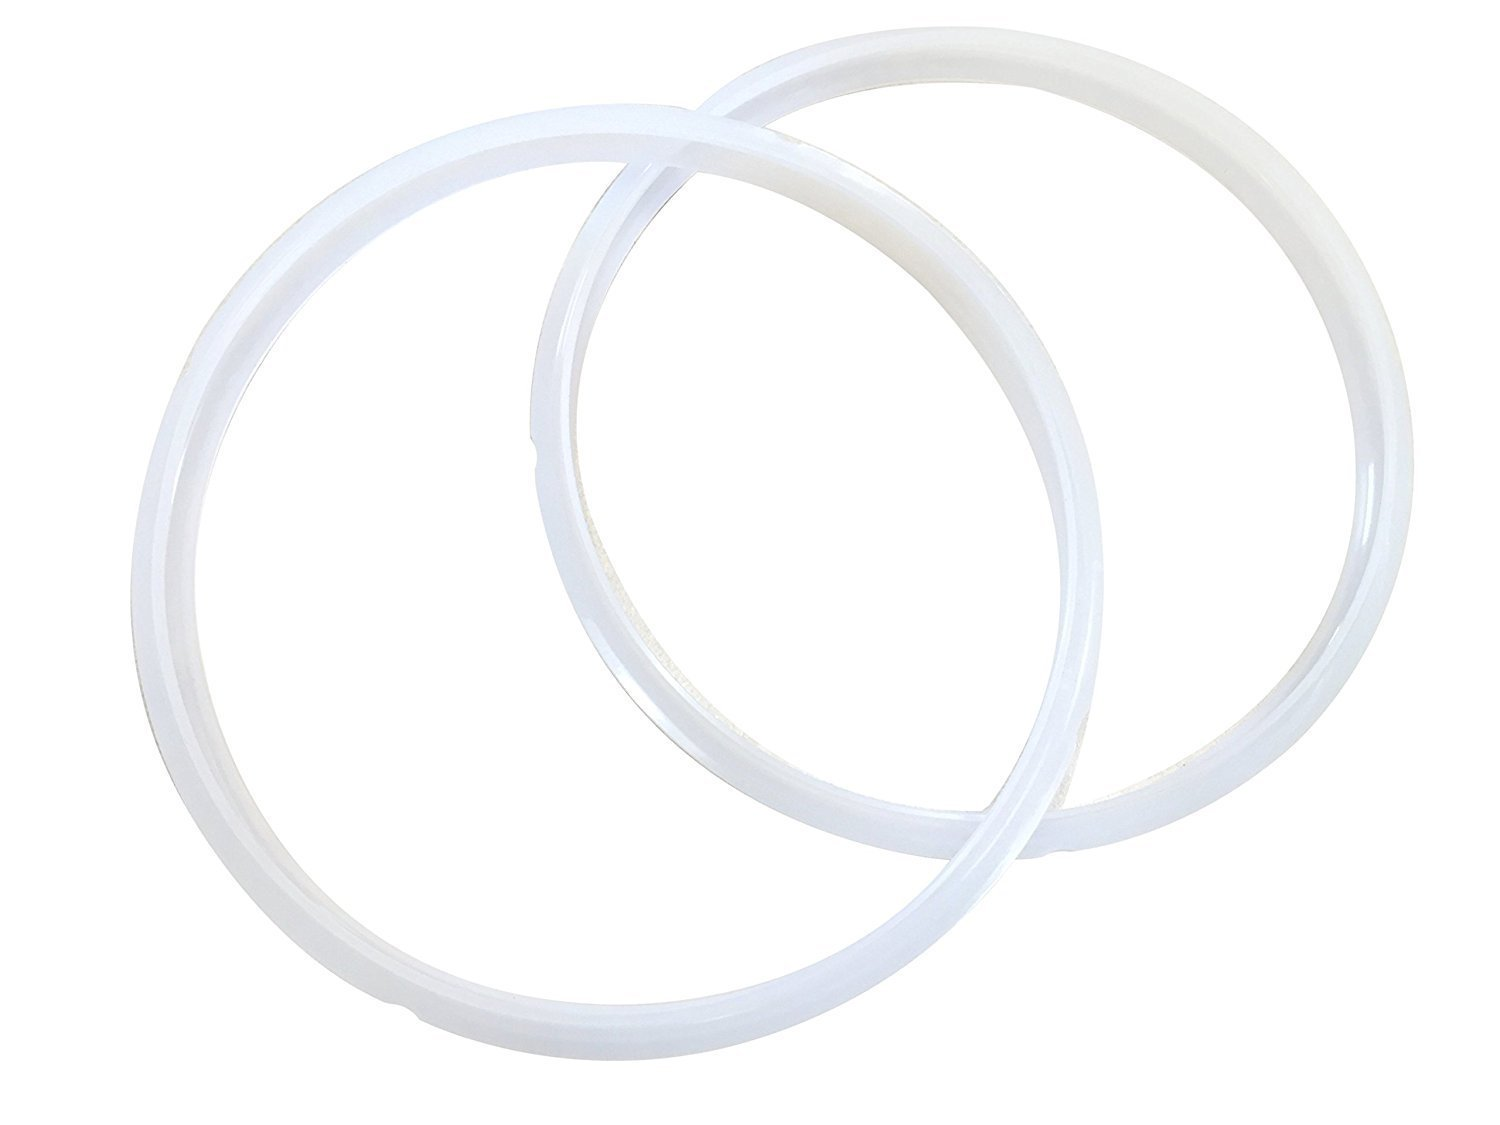 TWIN PACK: Two Rubber Gaskets For Power Pressure Cookers (All 8 Quart Models)